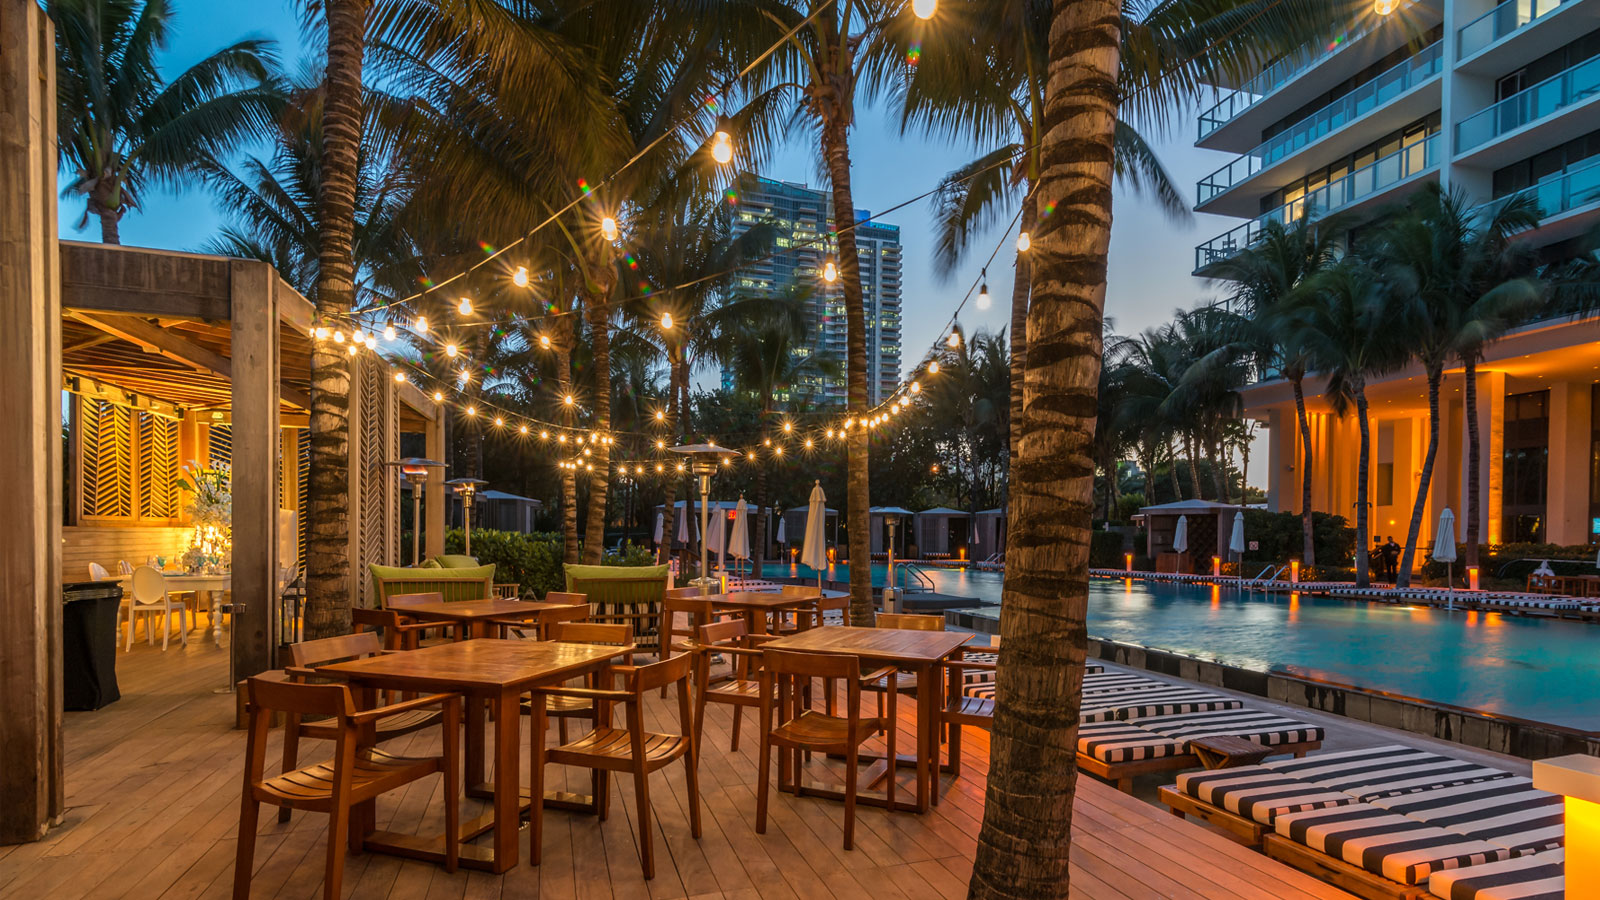 Miami Event Venues - Outdoor Events Space in Miami